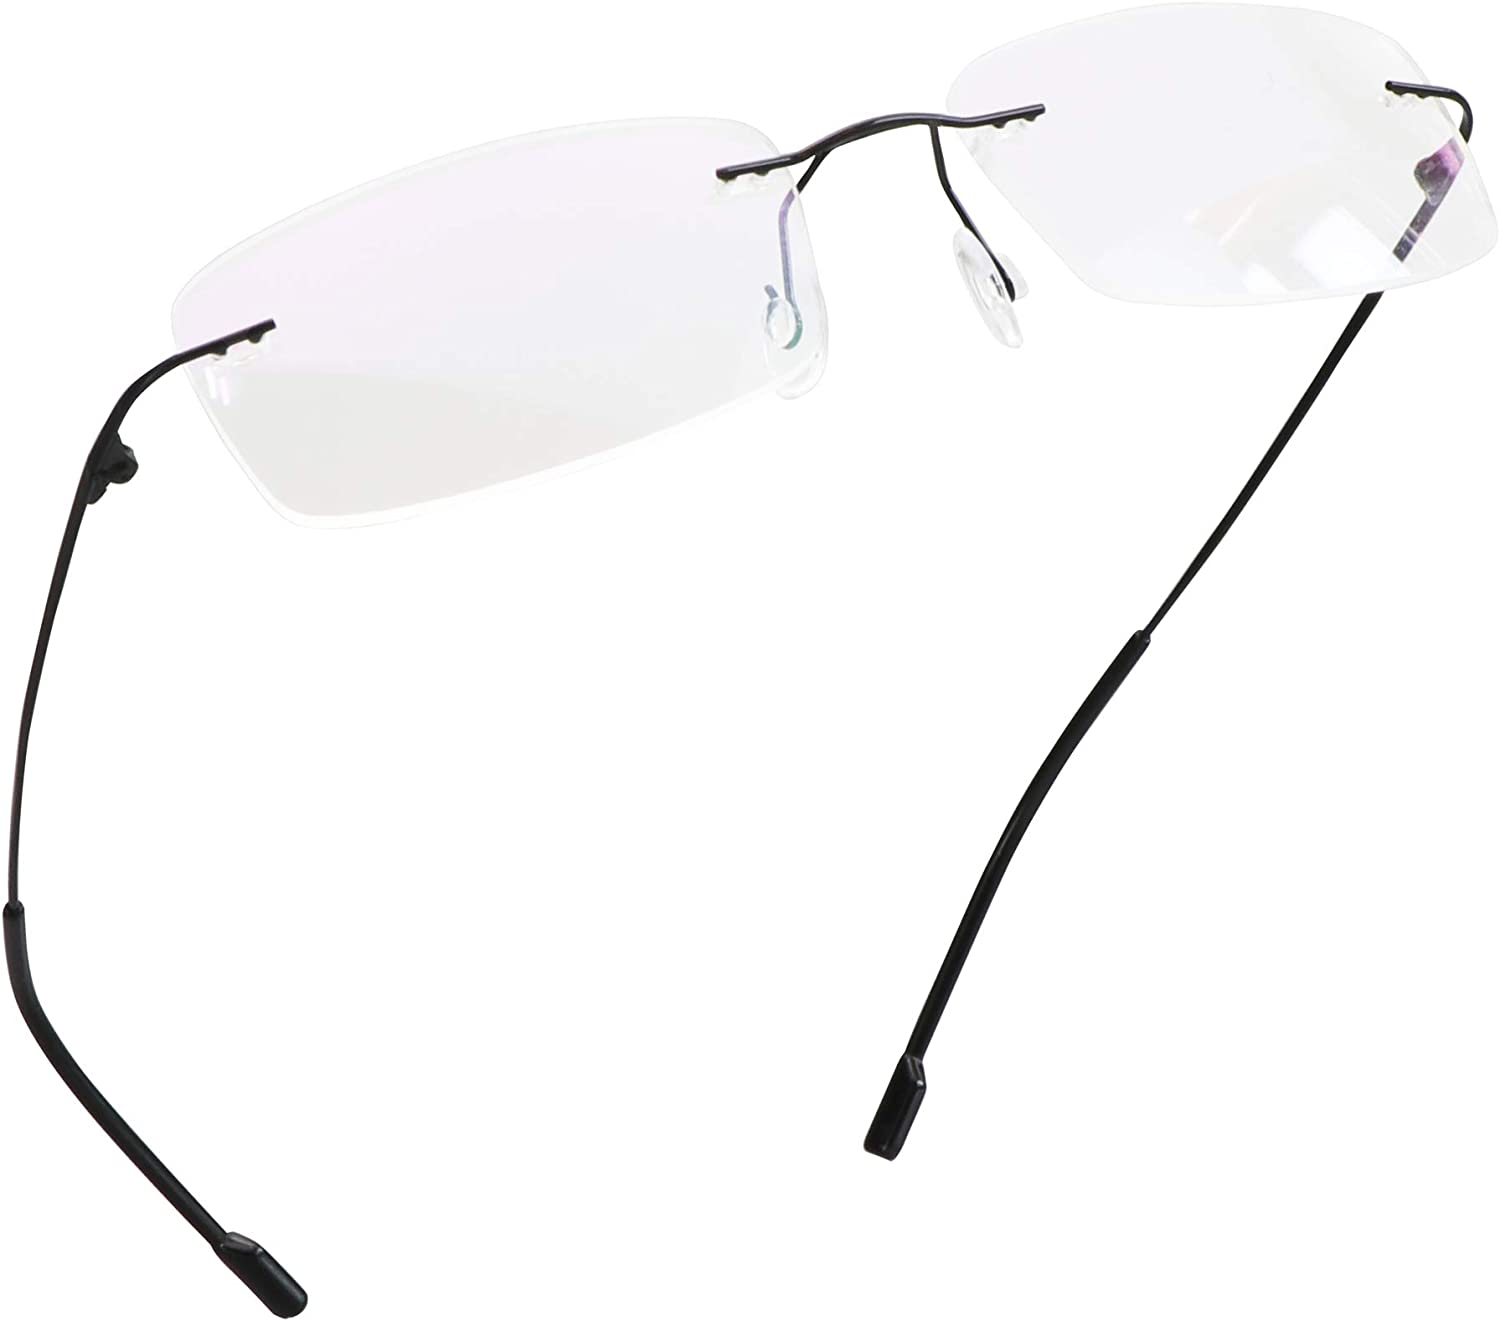 LifeArt Blue Light Blocking Glasses, Computer Reading Glasses, Anti Blue Rays, Reduce Eyestrain, Rimless Frame Tinted Lens with diamond, Stylish for Men and Wowen (Black, +1.50 Magnification)